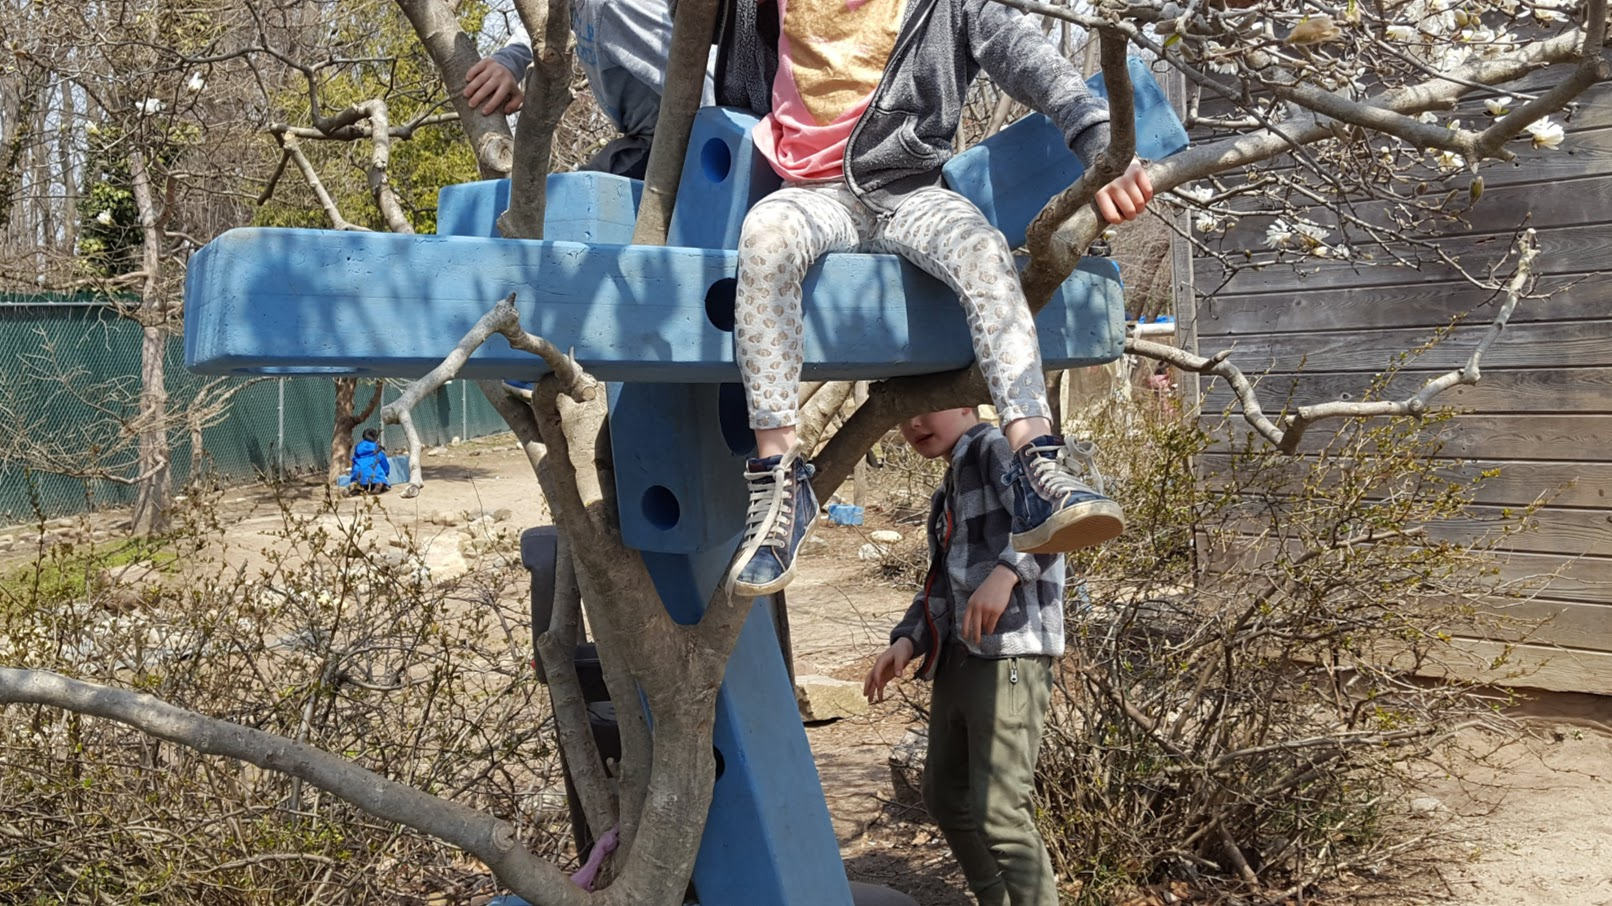 Children sit and climb around on blue foam Imagination Playground blocks that have been set into the branches of a tree.